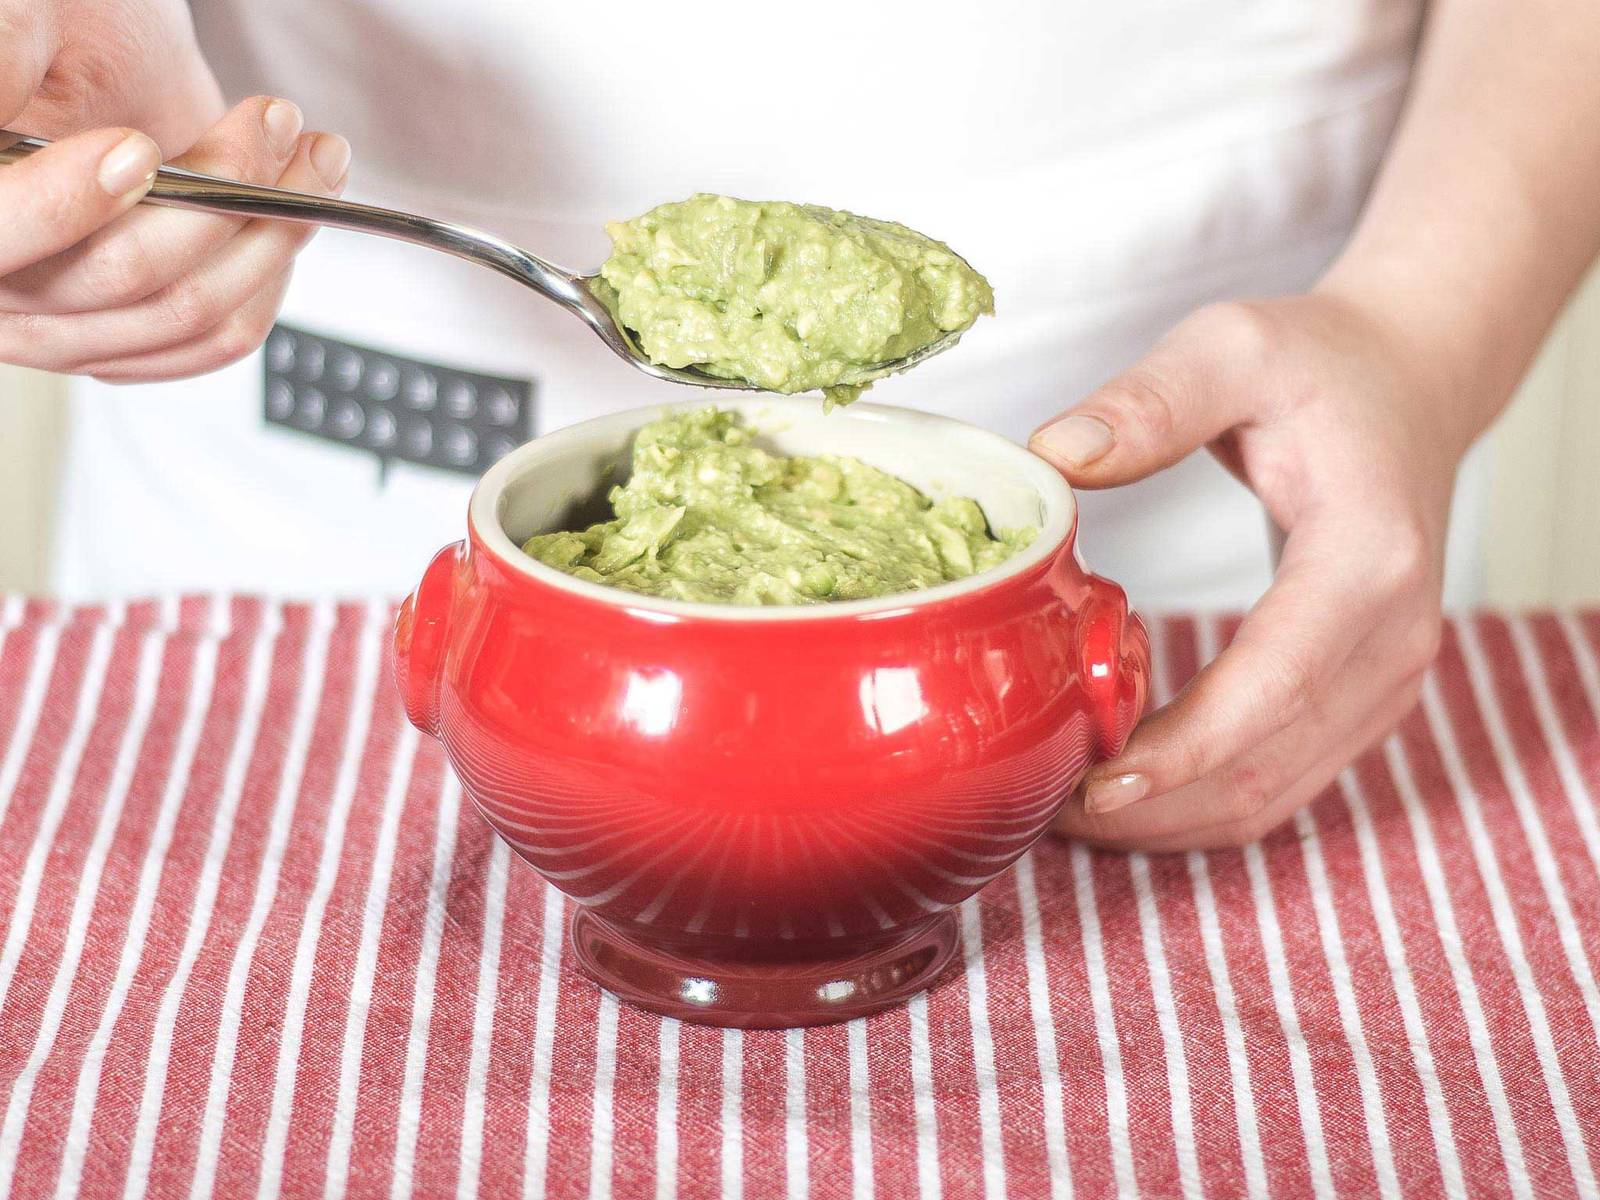 Next, fill the tumblers with the avocado crème.